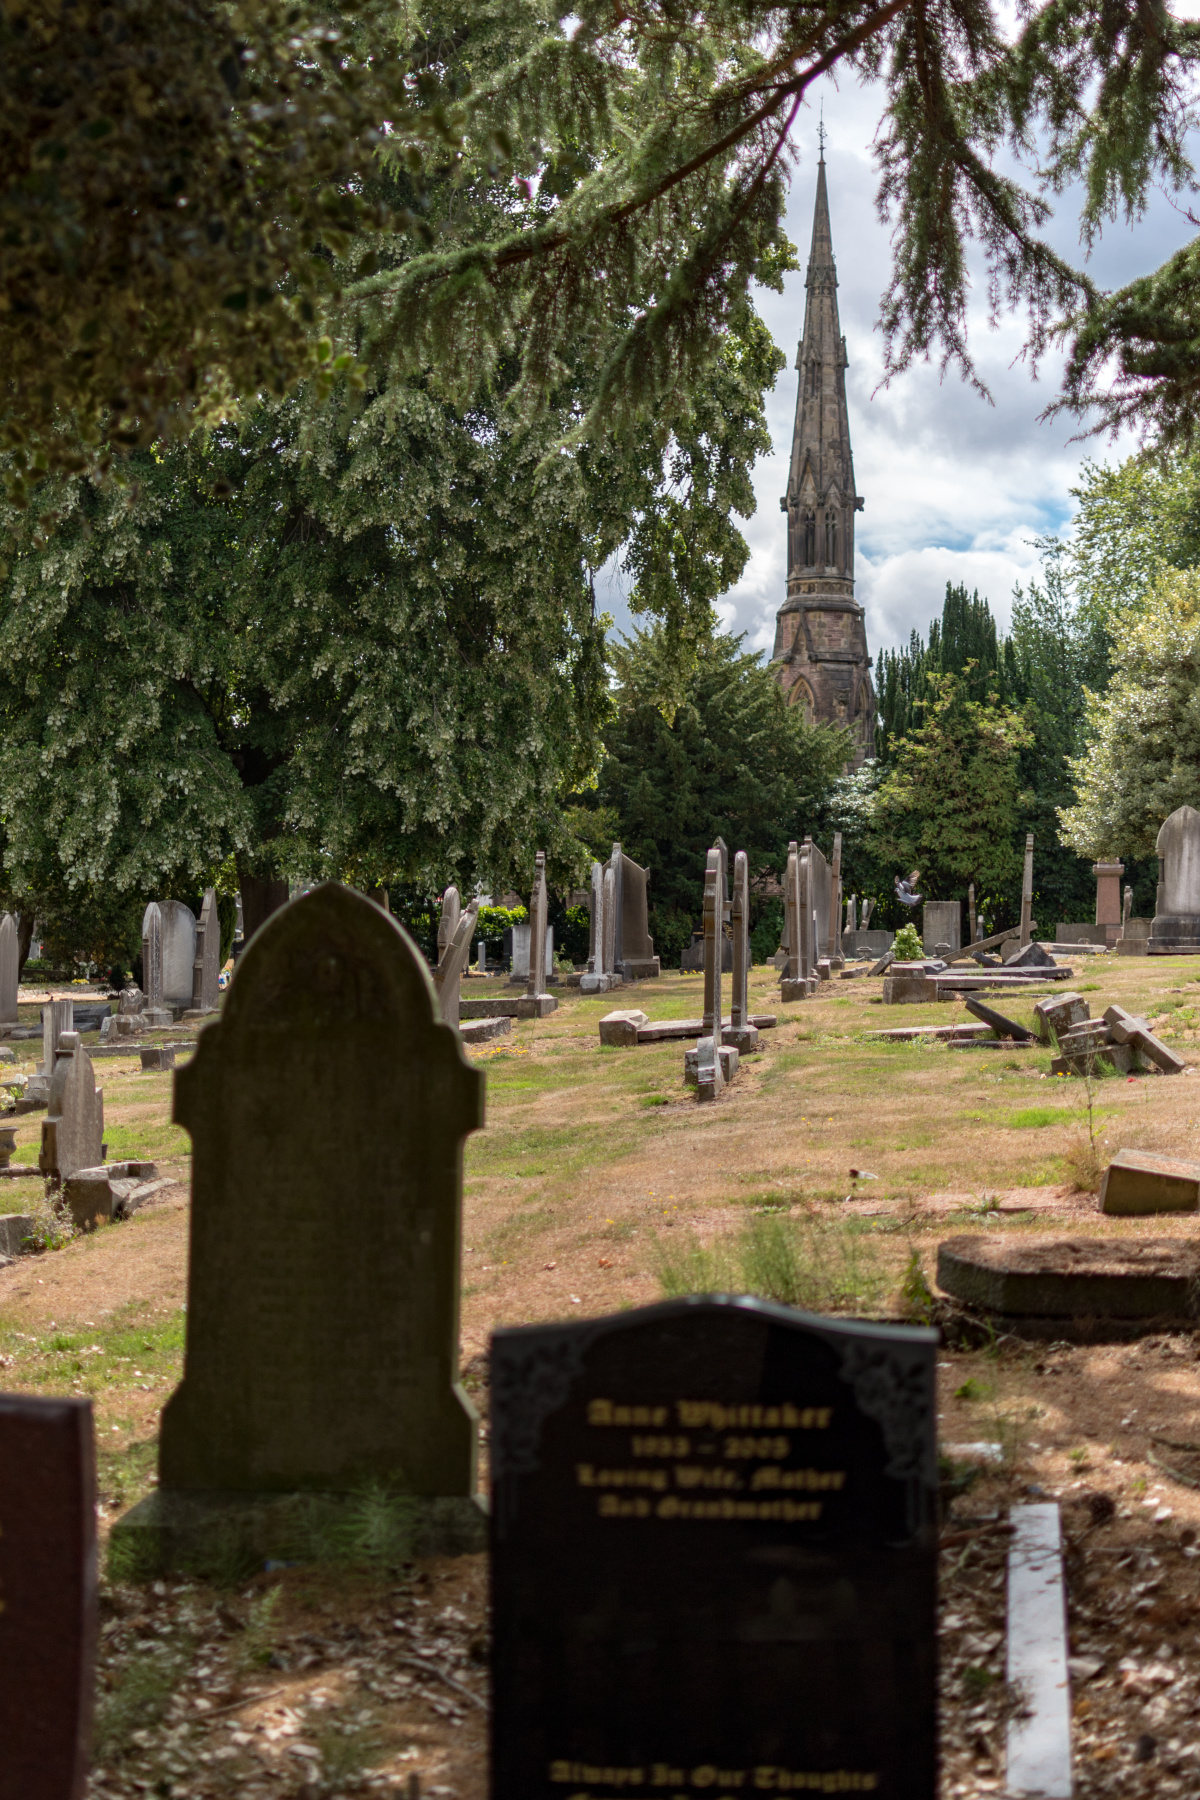 Summertime in the Macclesfield Cemetery